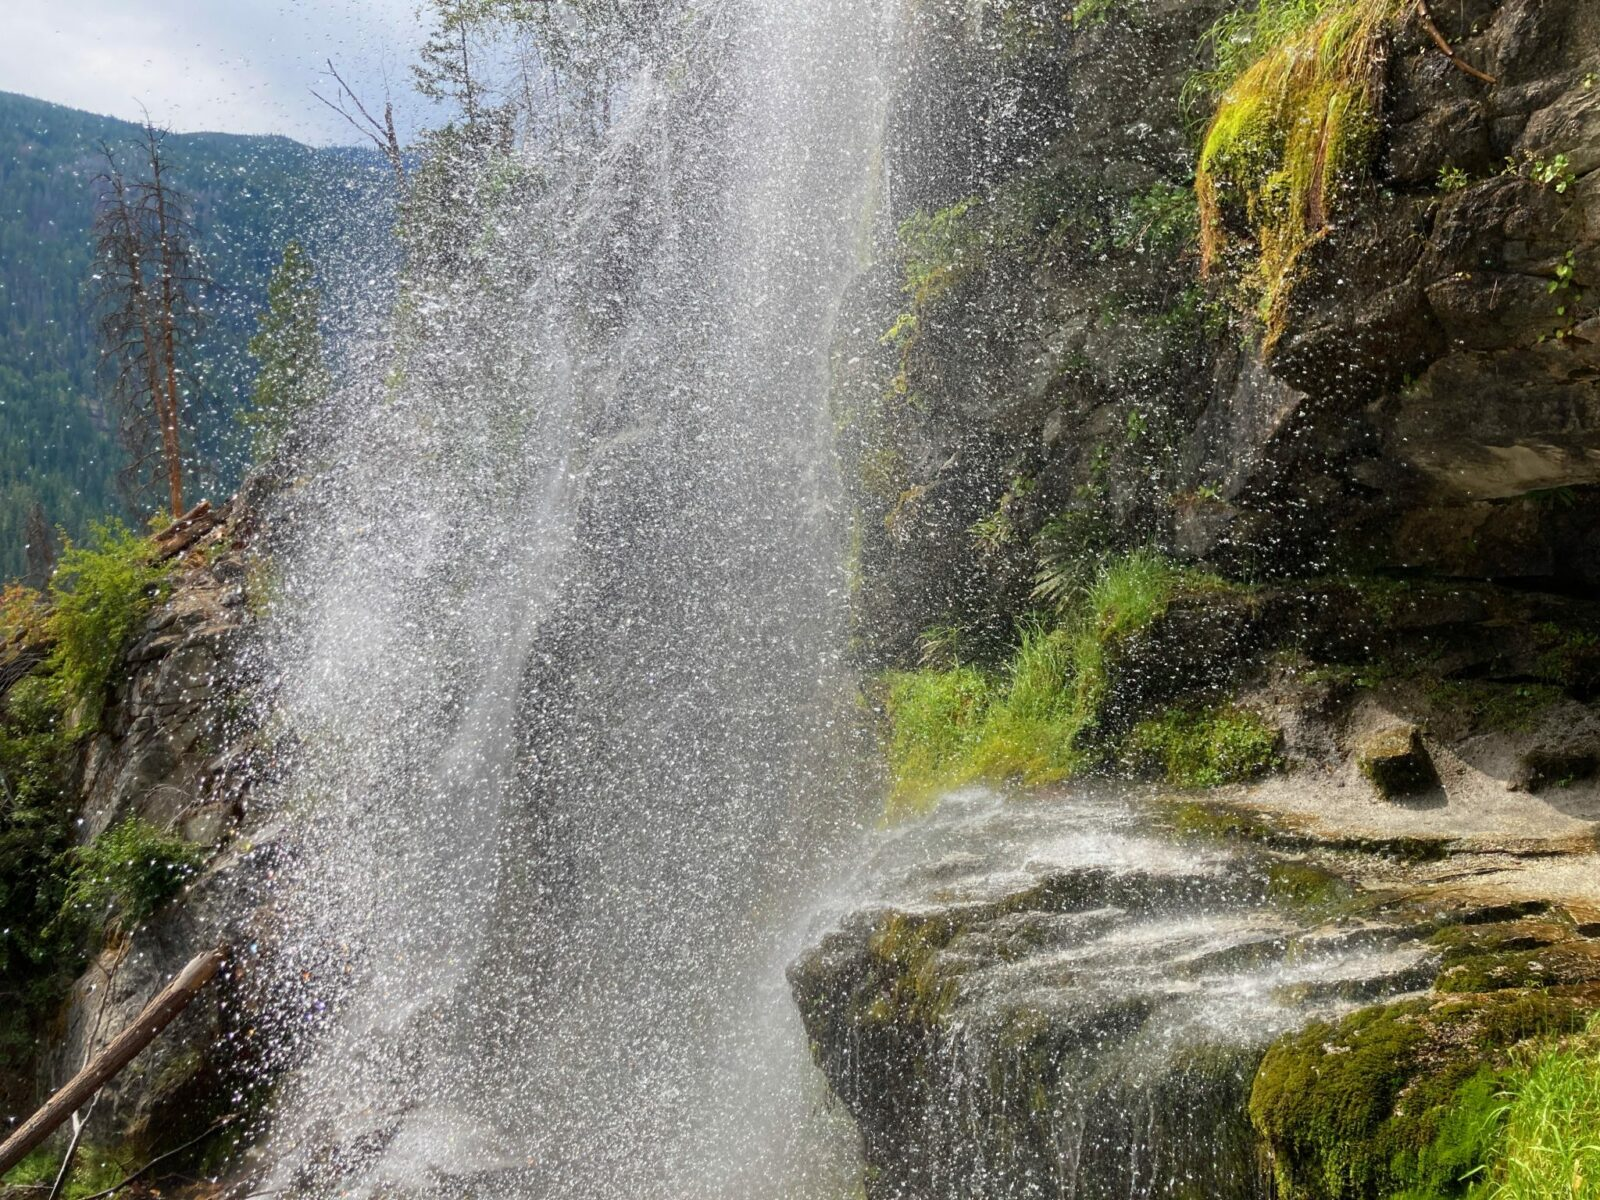 Spray from Silver Falls in the Entiat River Valleyl comes down a steep rock cliff. Some of the rocks are moss covered.